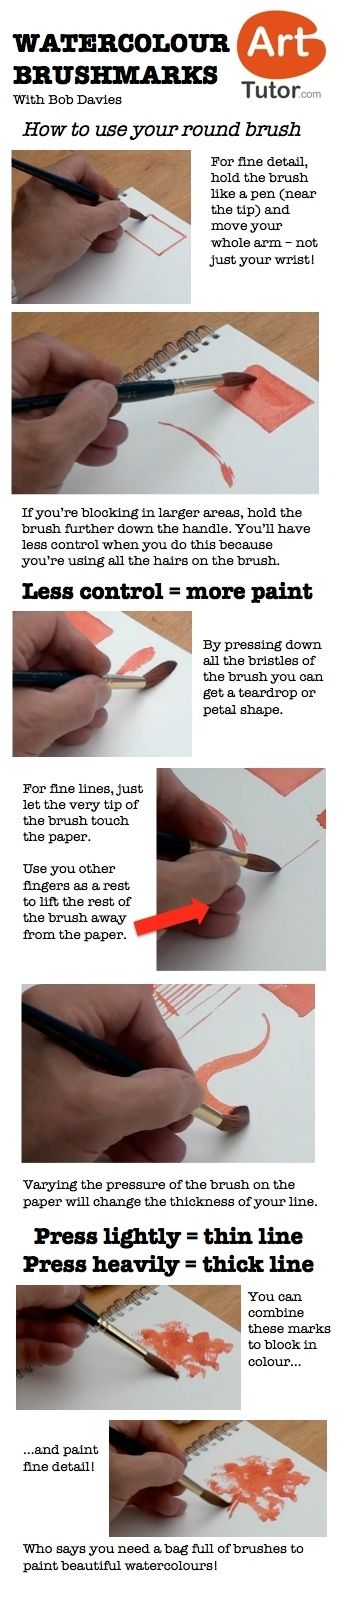 How to use your round brush in watercolour. For more watercolour tips and techniques, and to see the video of this lesson, go to http://www.arttutor.com/blog #watercolour